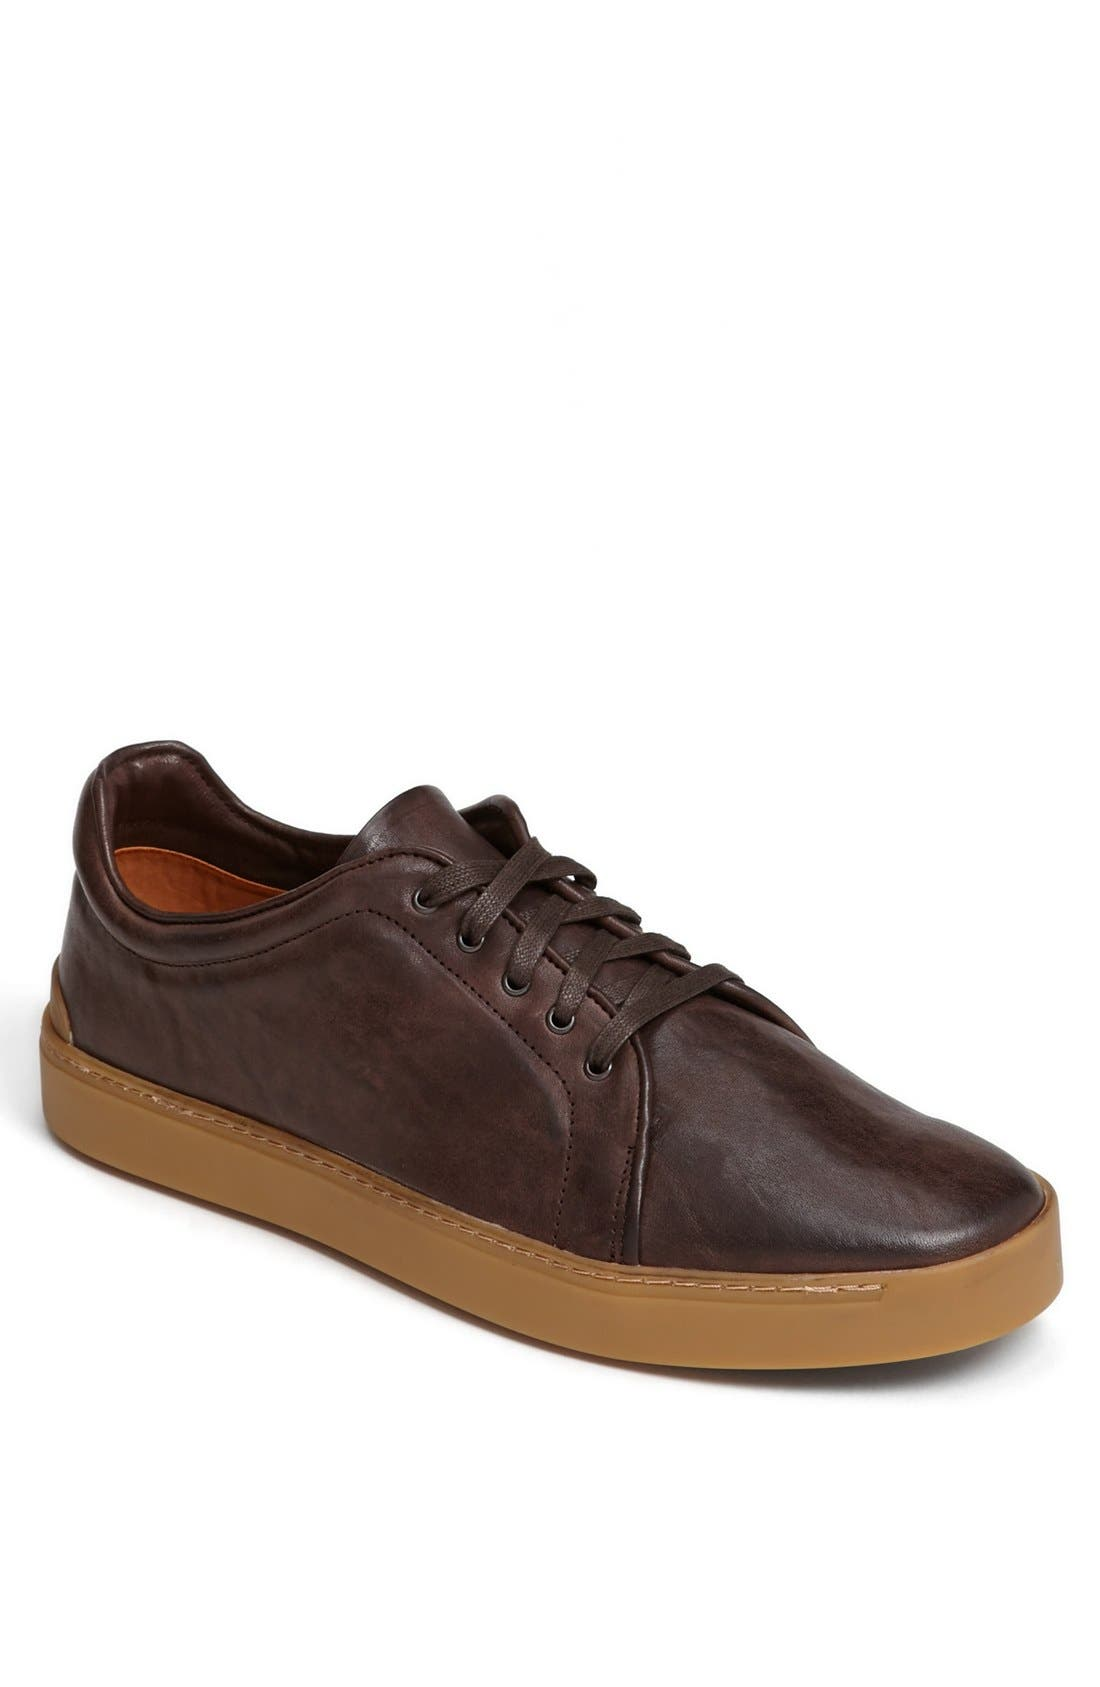 Main Image - rag & bone 'Kent' Leather Sneaker